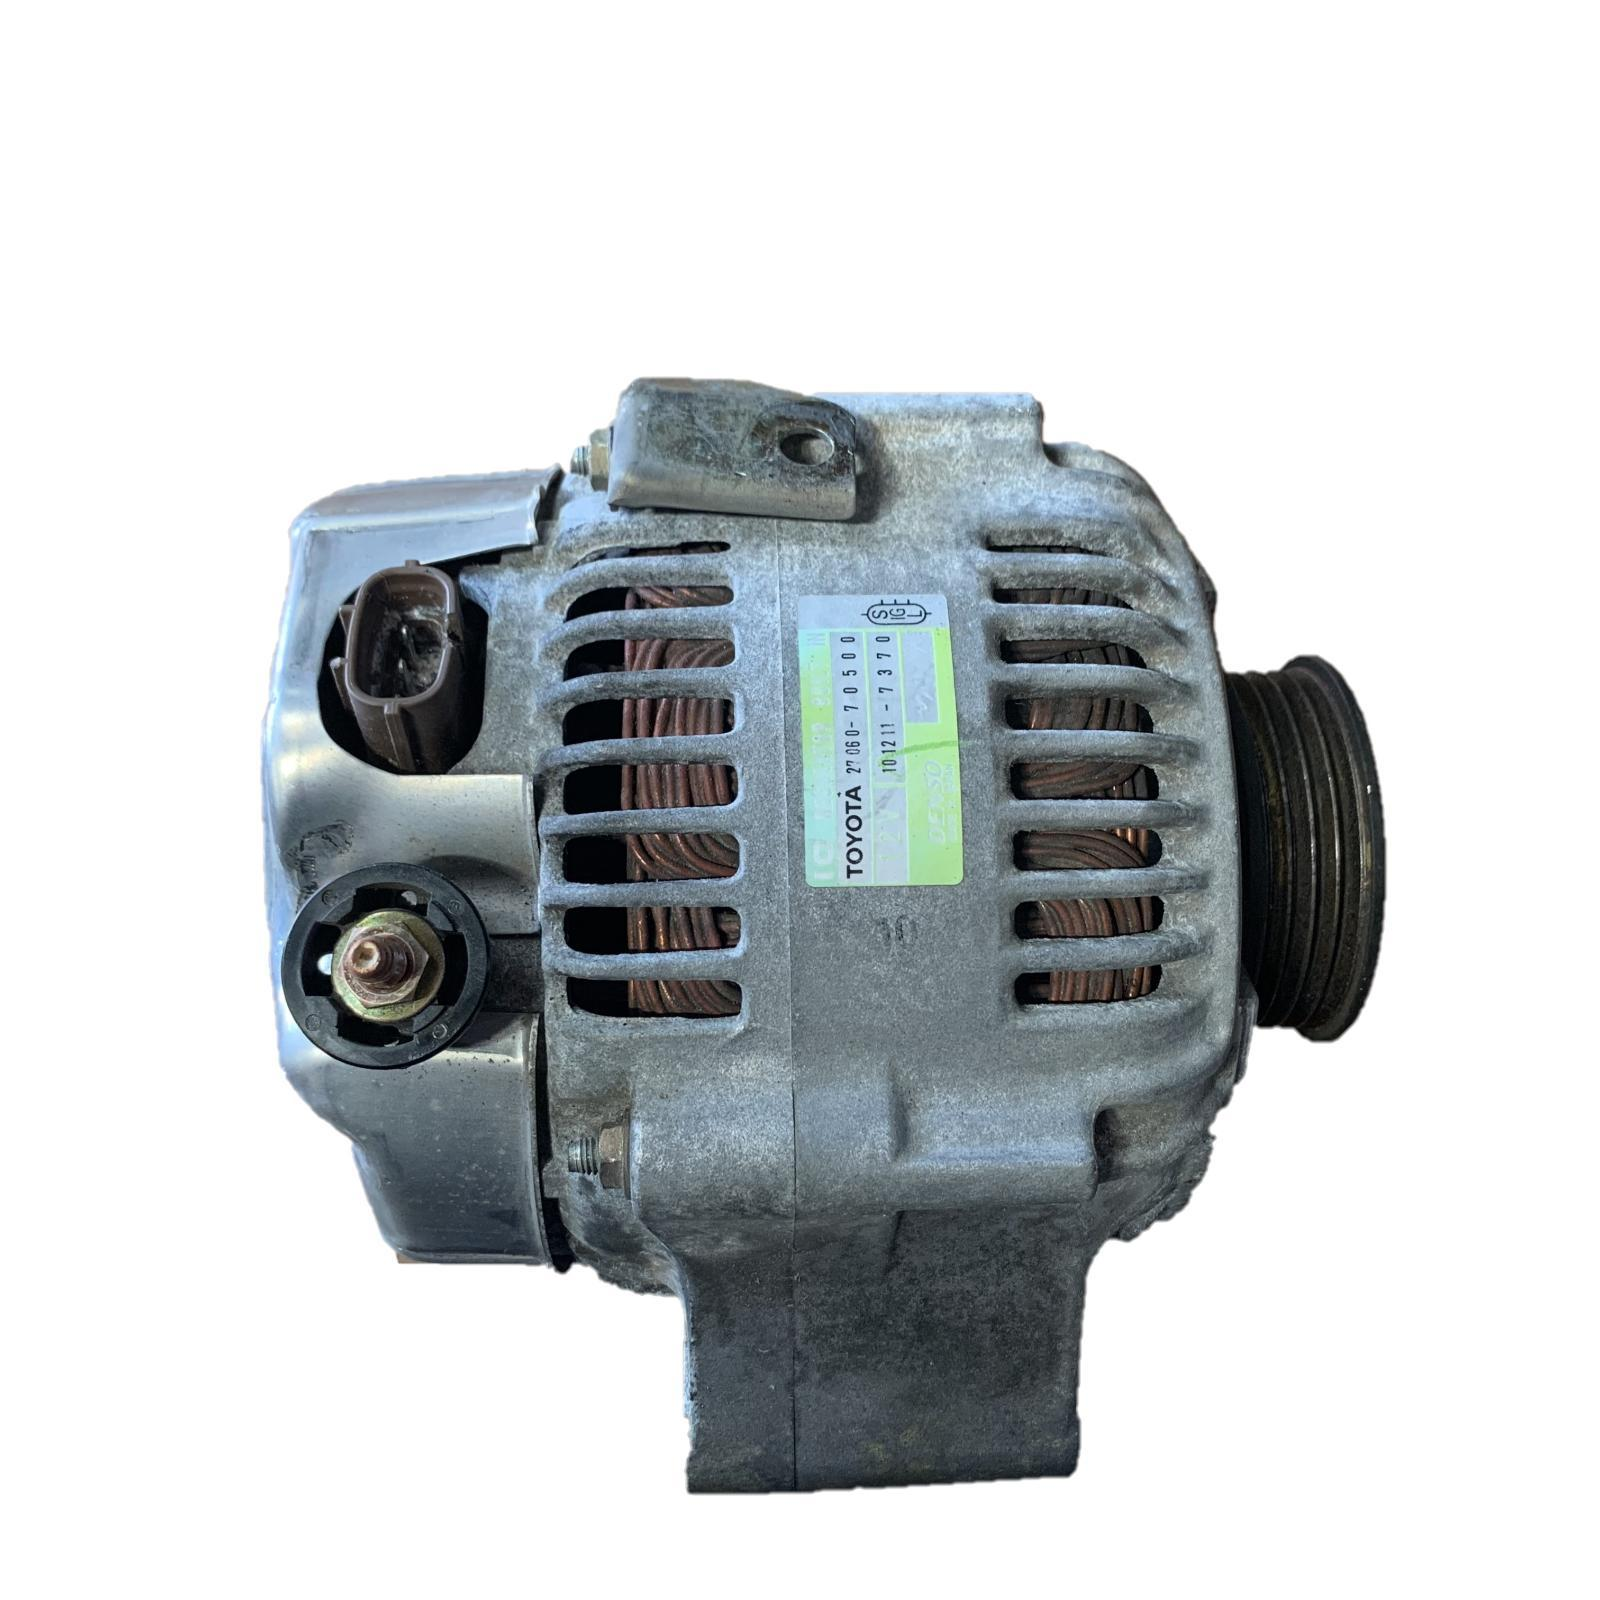 LEXUS IS200/IS300, Alternator, IS200, 2.0, 1G-FE, 01/98-10/05